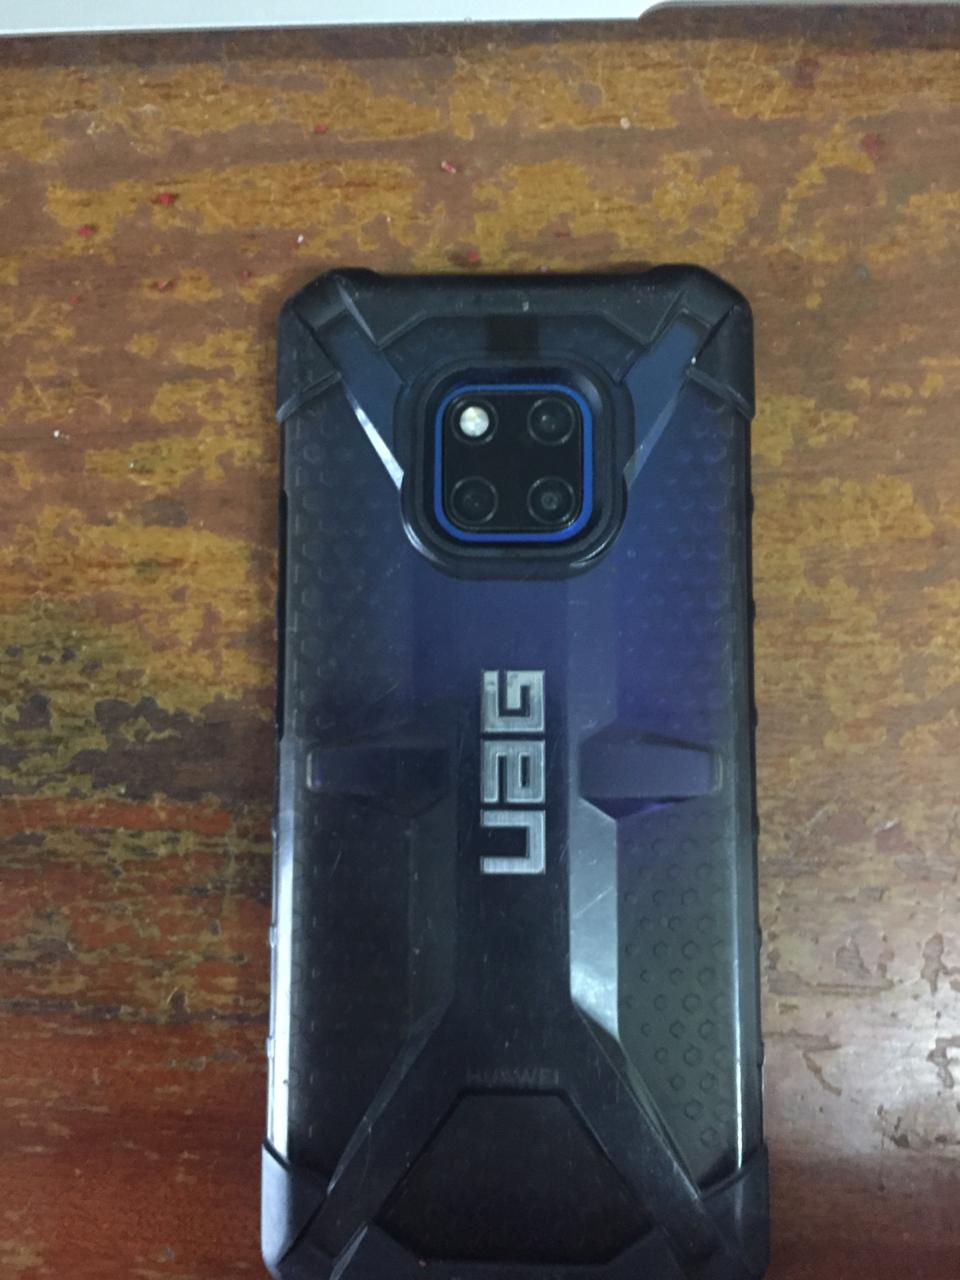 Huawei Mate 20 Pro 128GB(single sim) with UAG Cover, Wireless Charger and Screen Protector